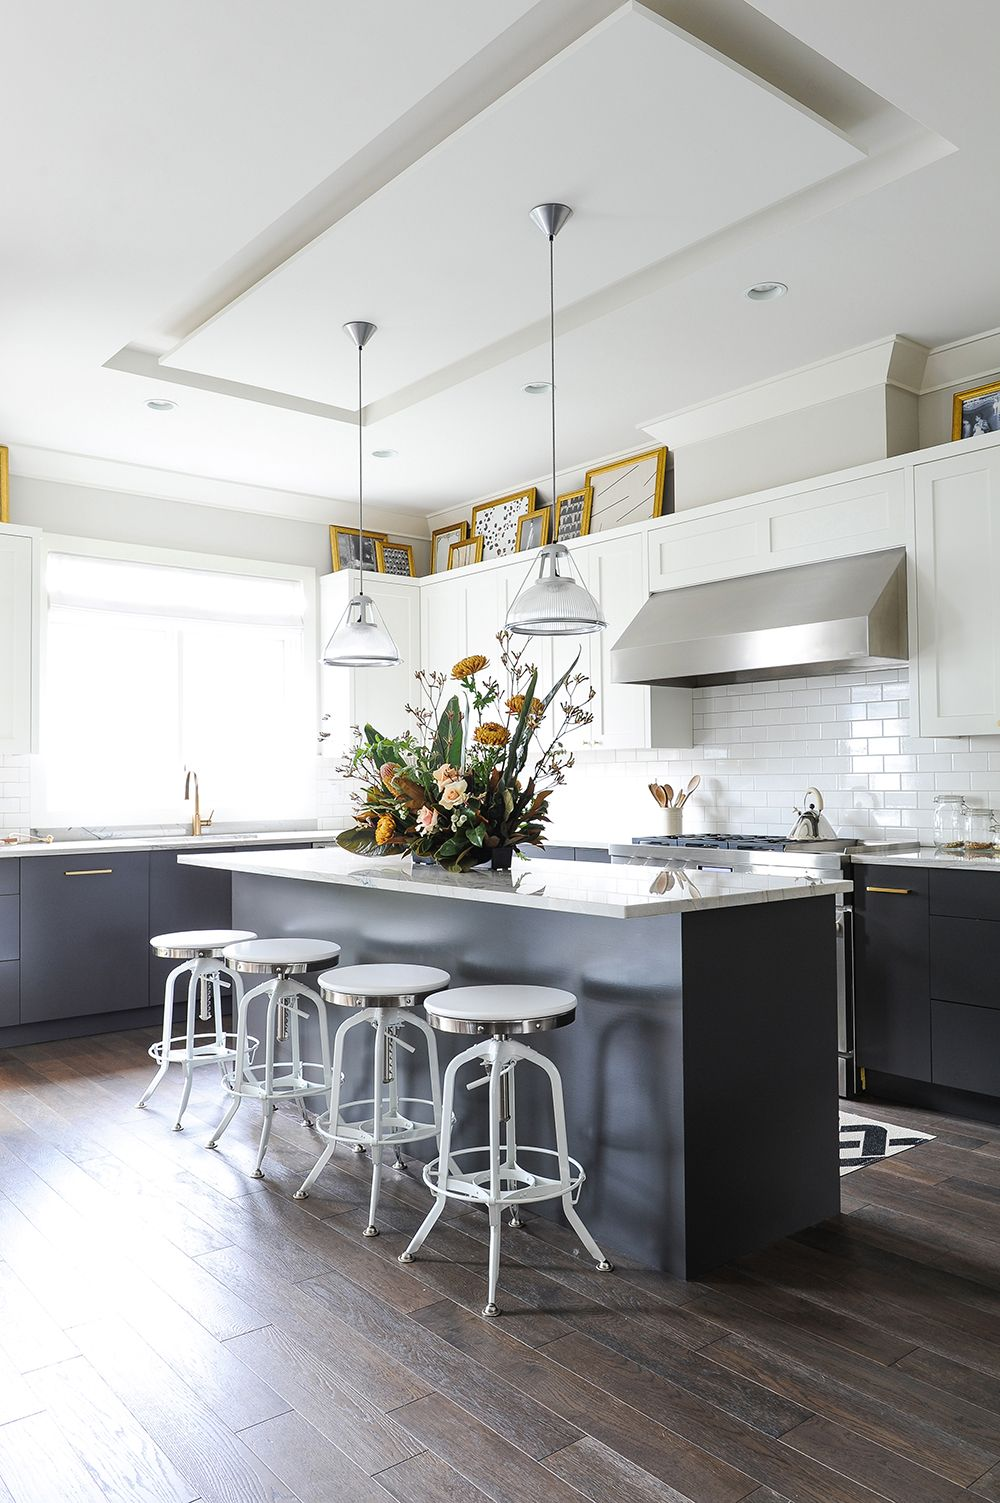 Best Bright White Kitchen With Grey Cabinetry And Gold Accents 400 x 300